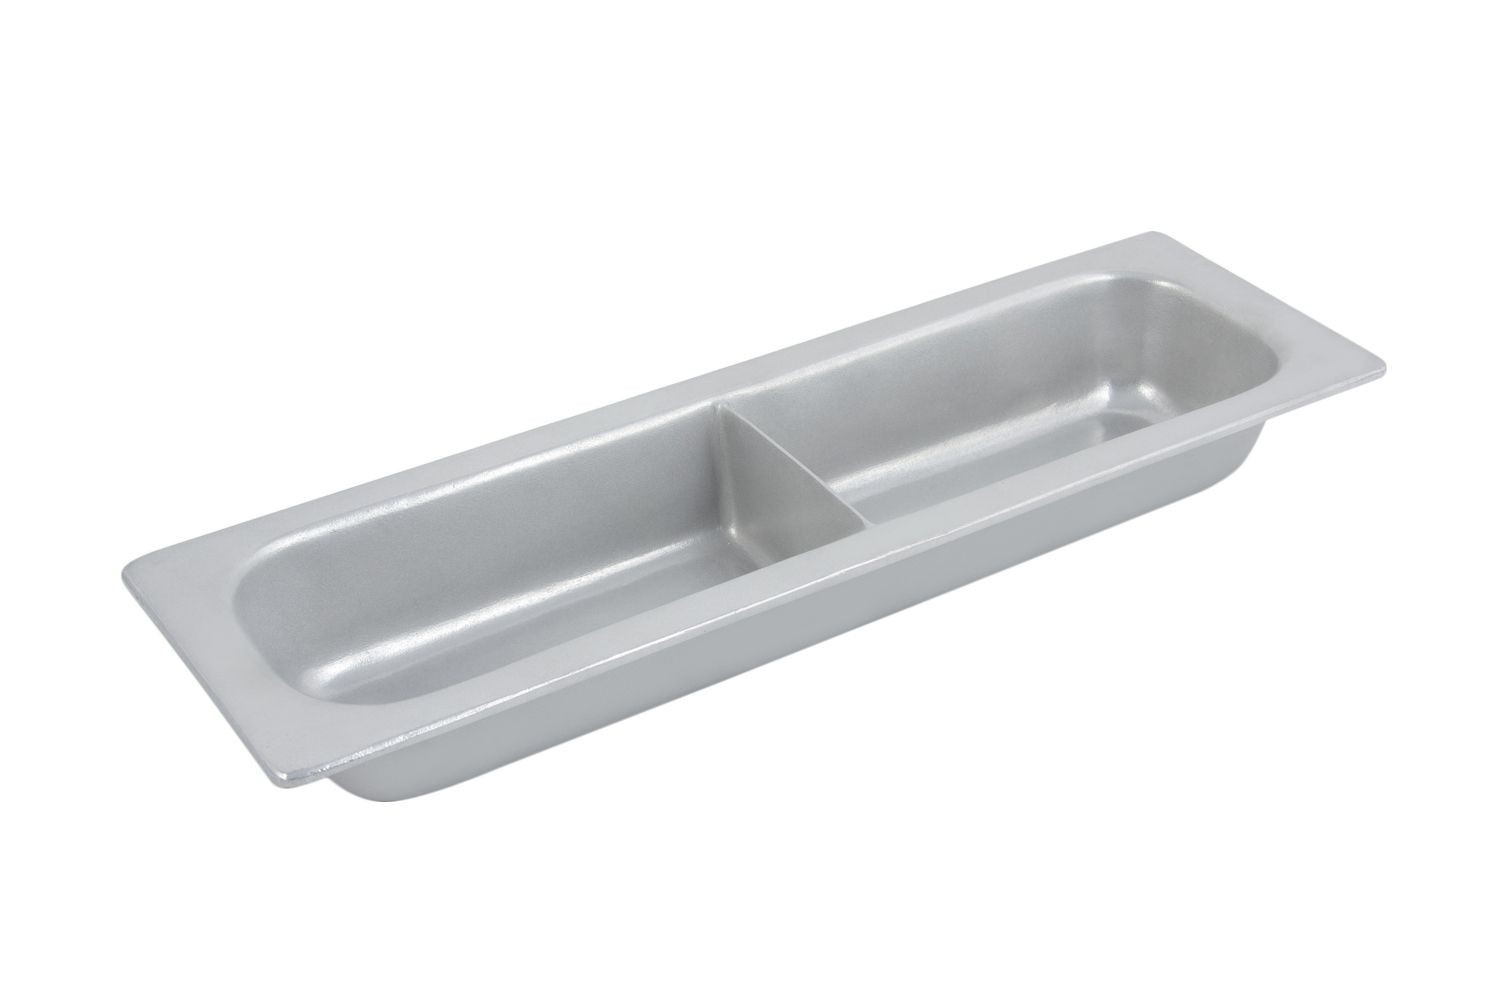 Bon Chef 5094DP Half-Size Long Chafer Food Pan with Divider, Pewter Glo 3 1/2 Qt.